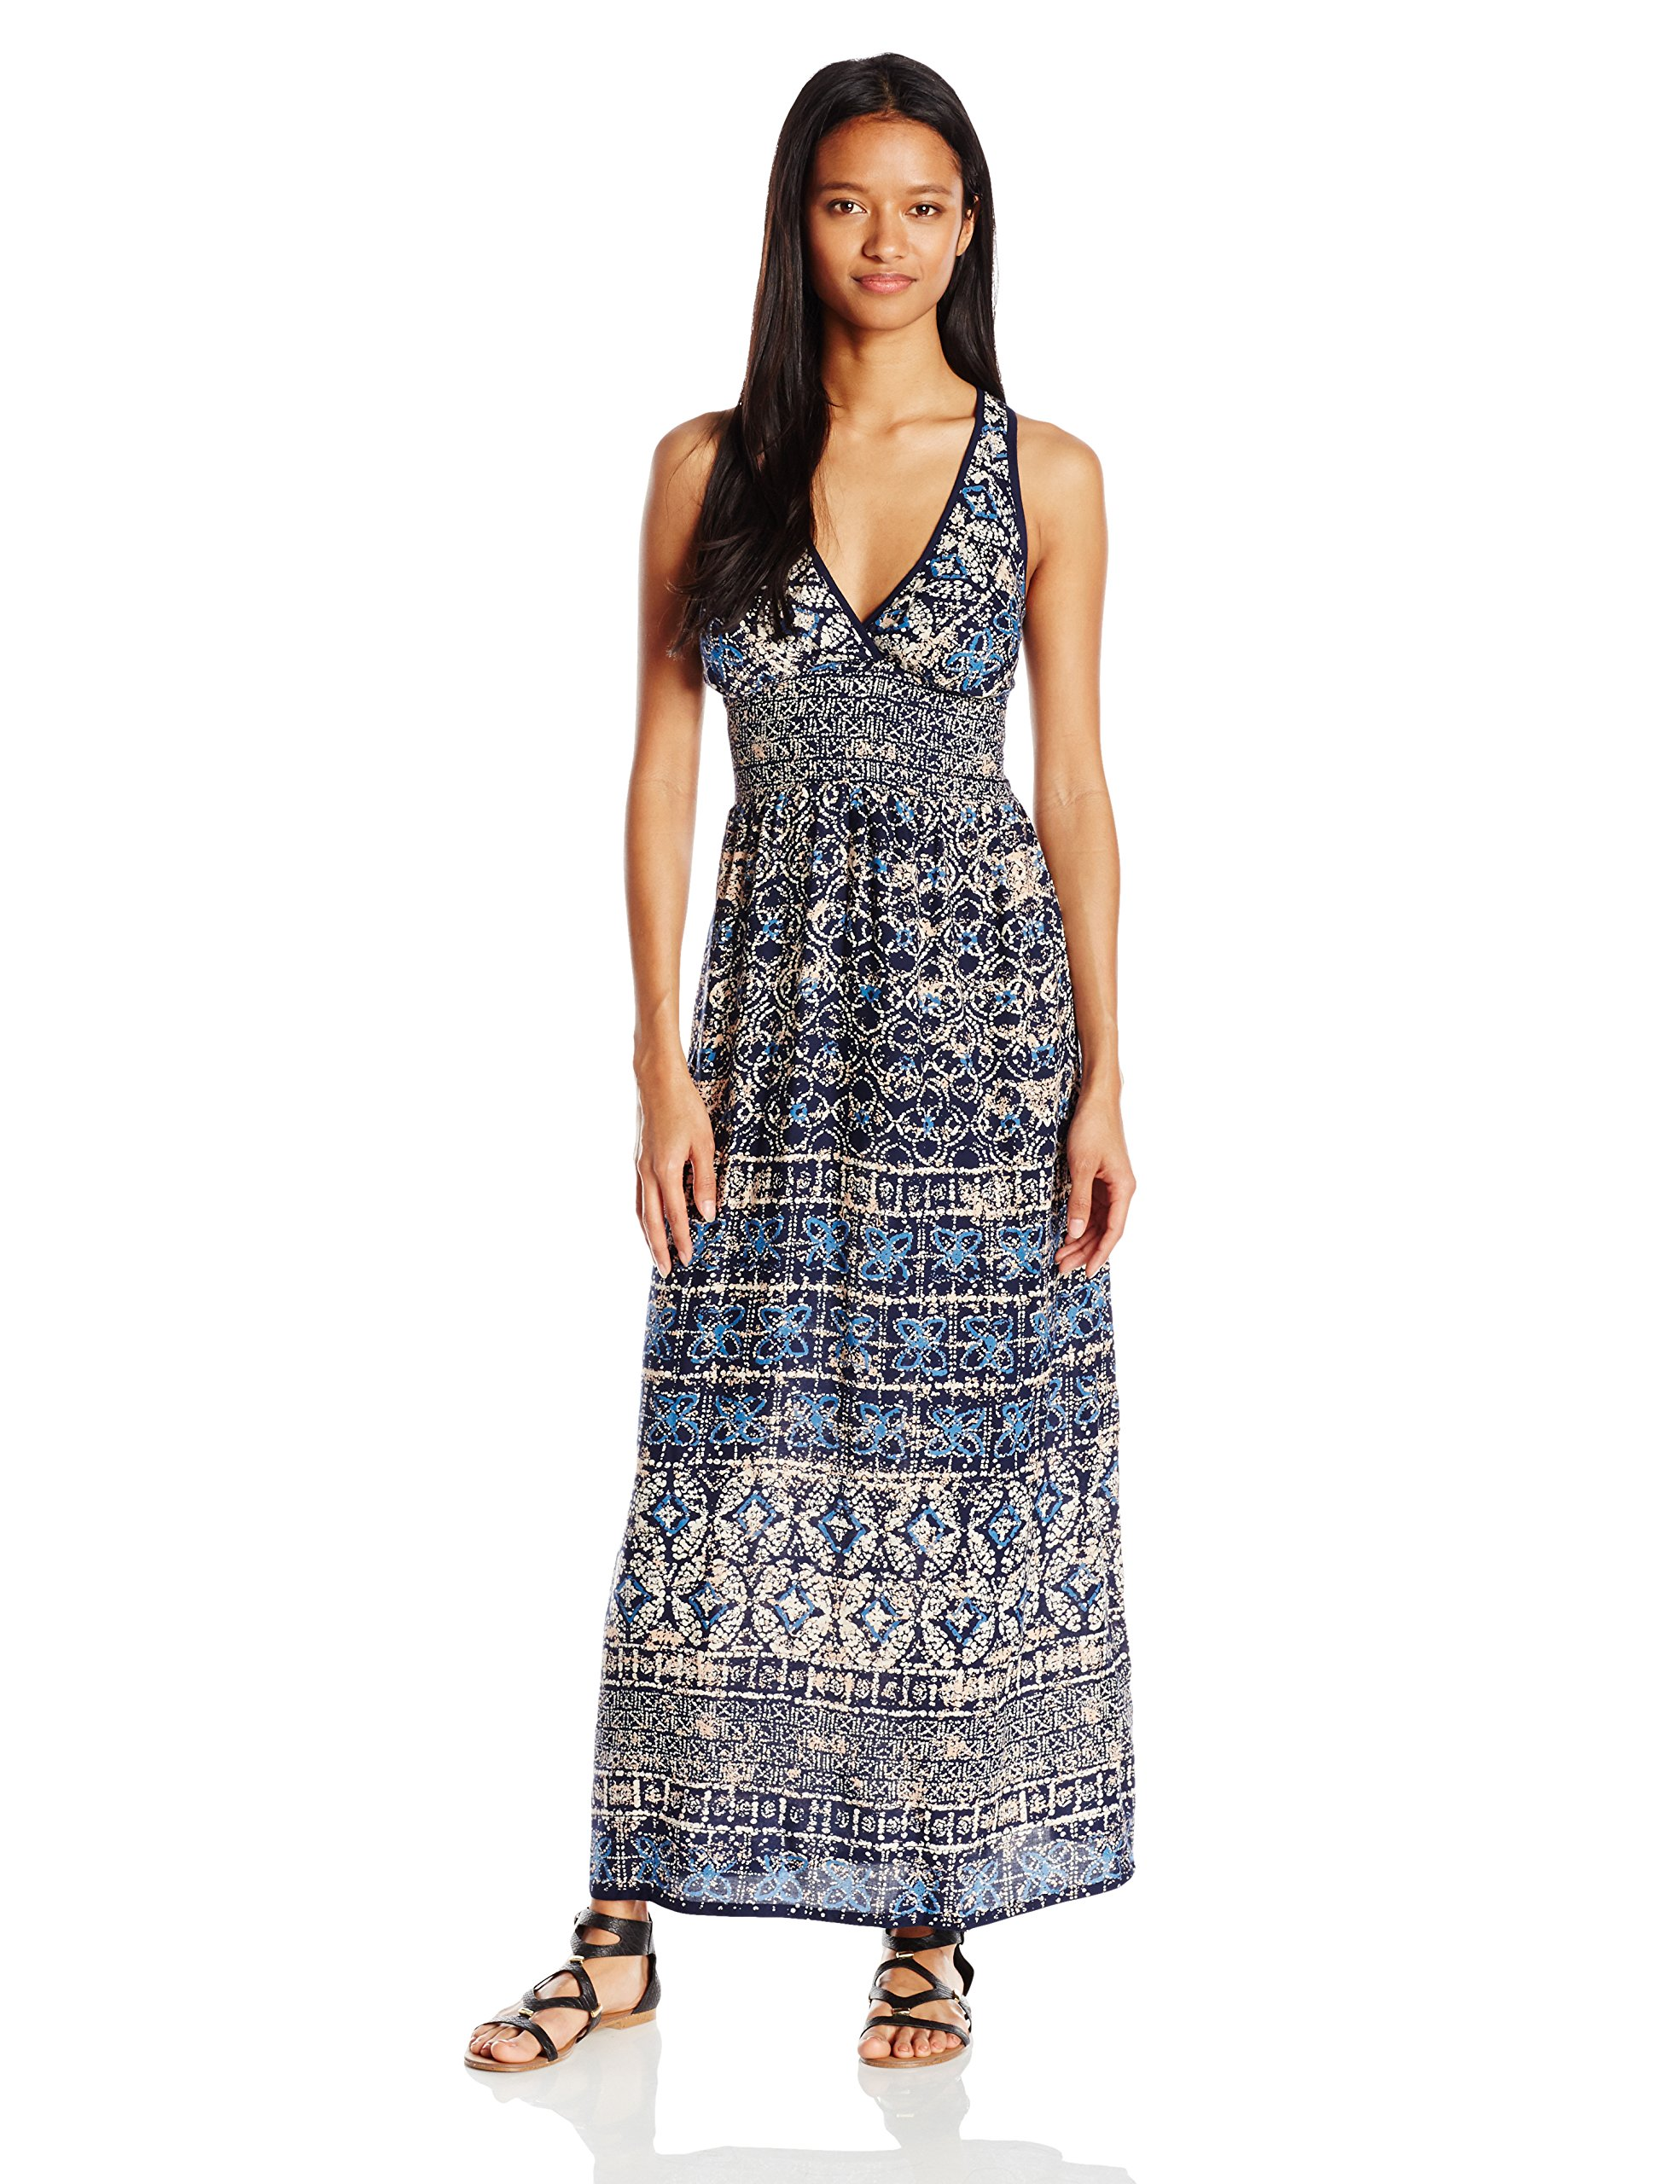 Angie Women's Printed Maxi Dress, Blue, Large